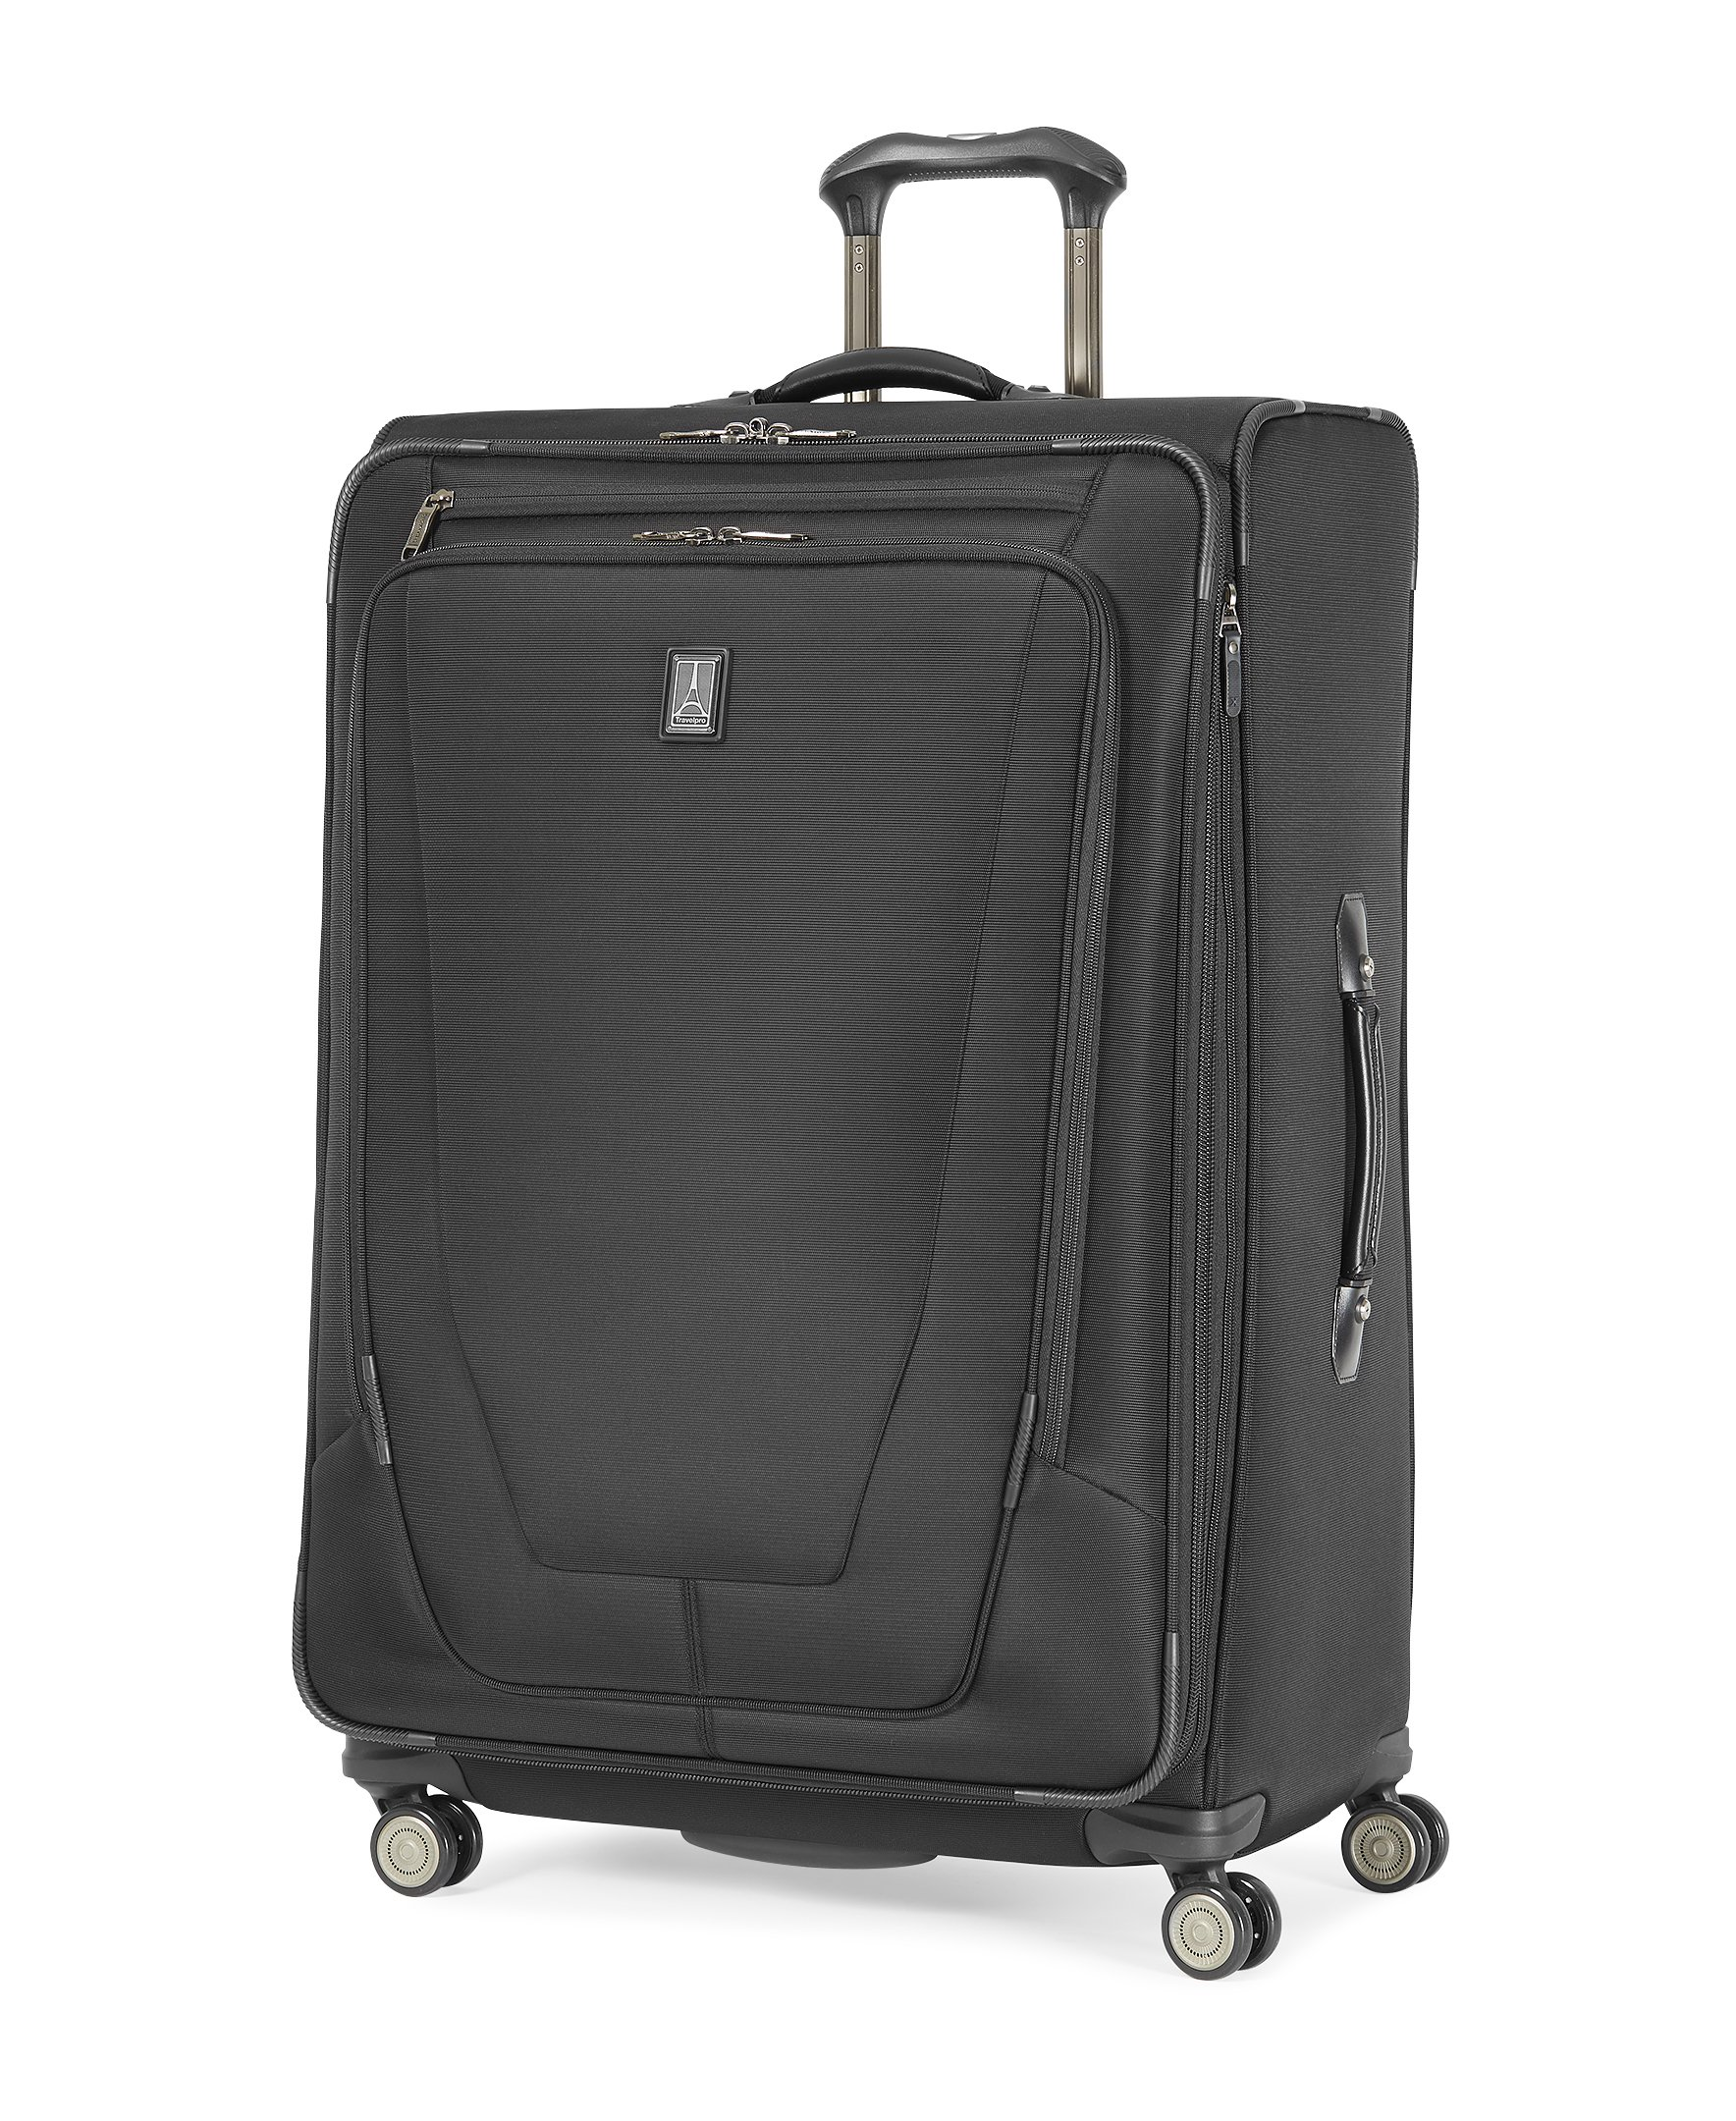 Travelpro Crew 11 29'' Expandable Spinner Suiter Suitcase, Black